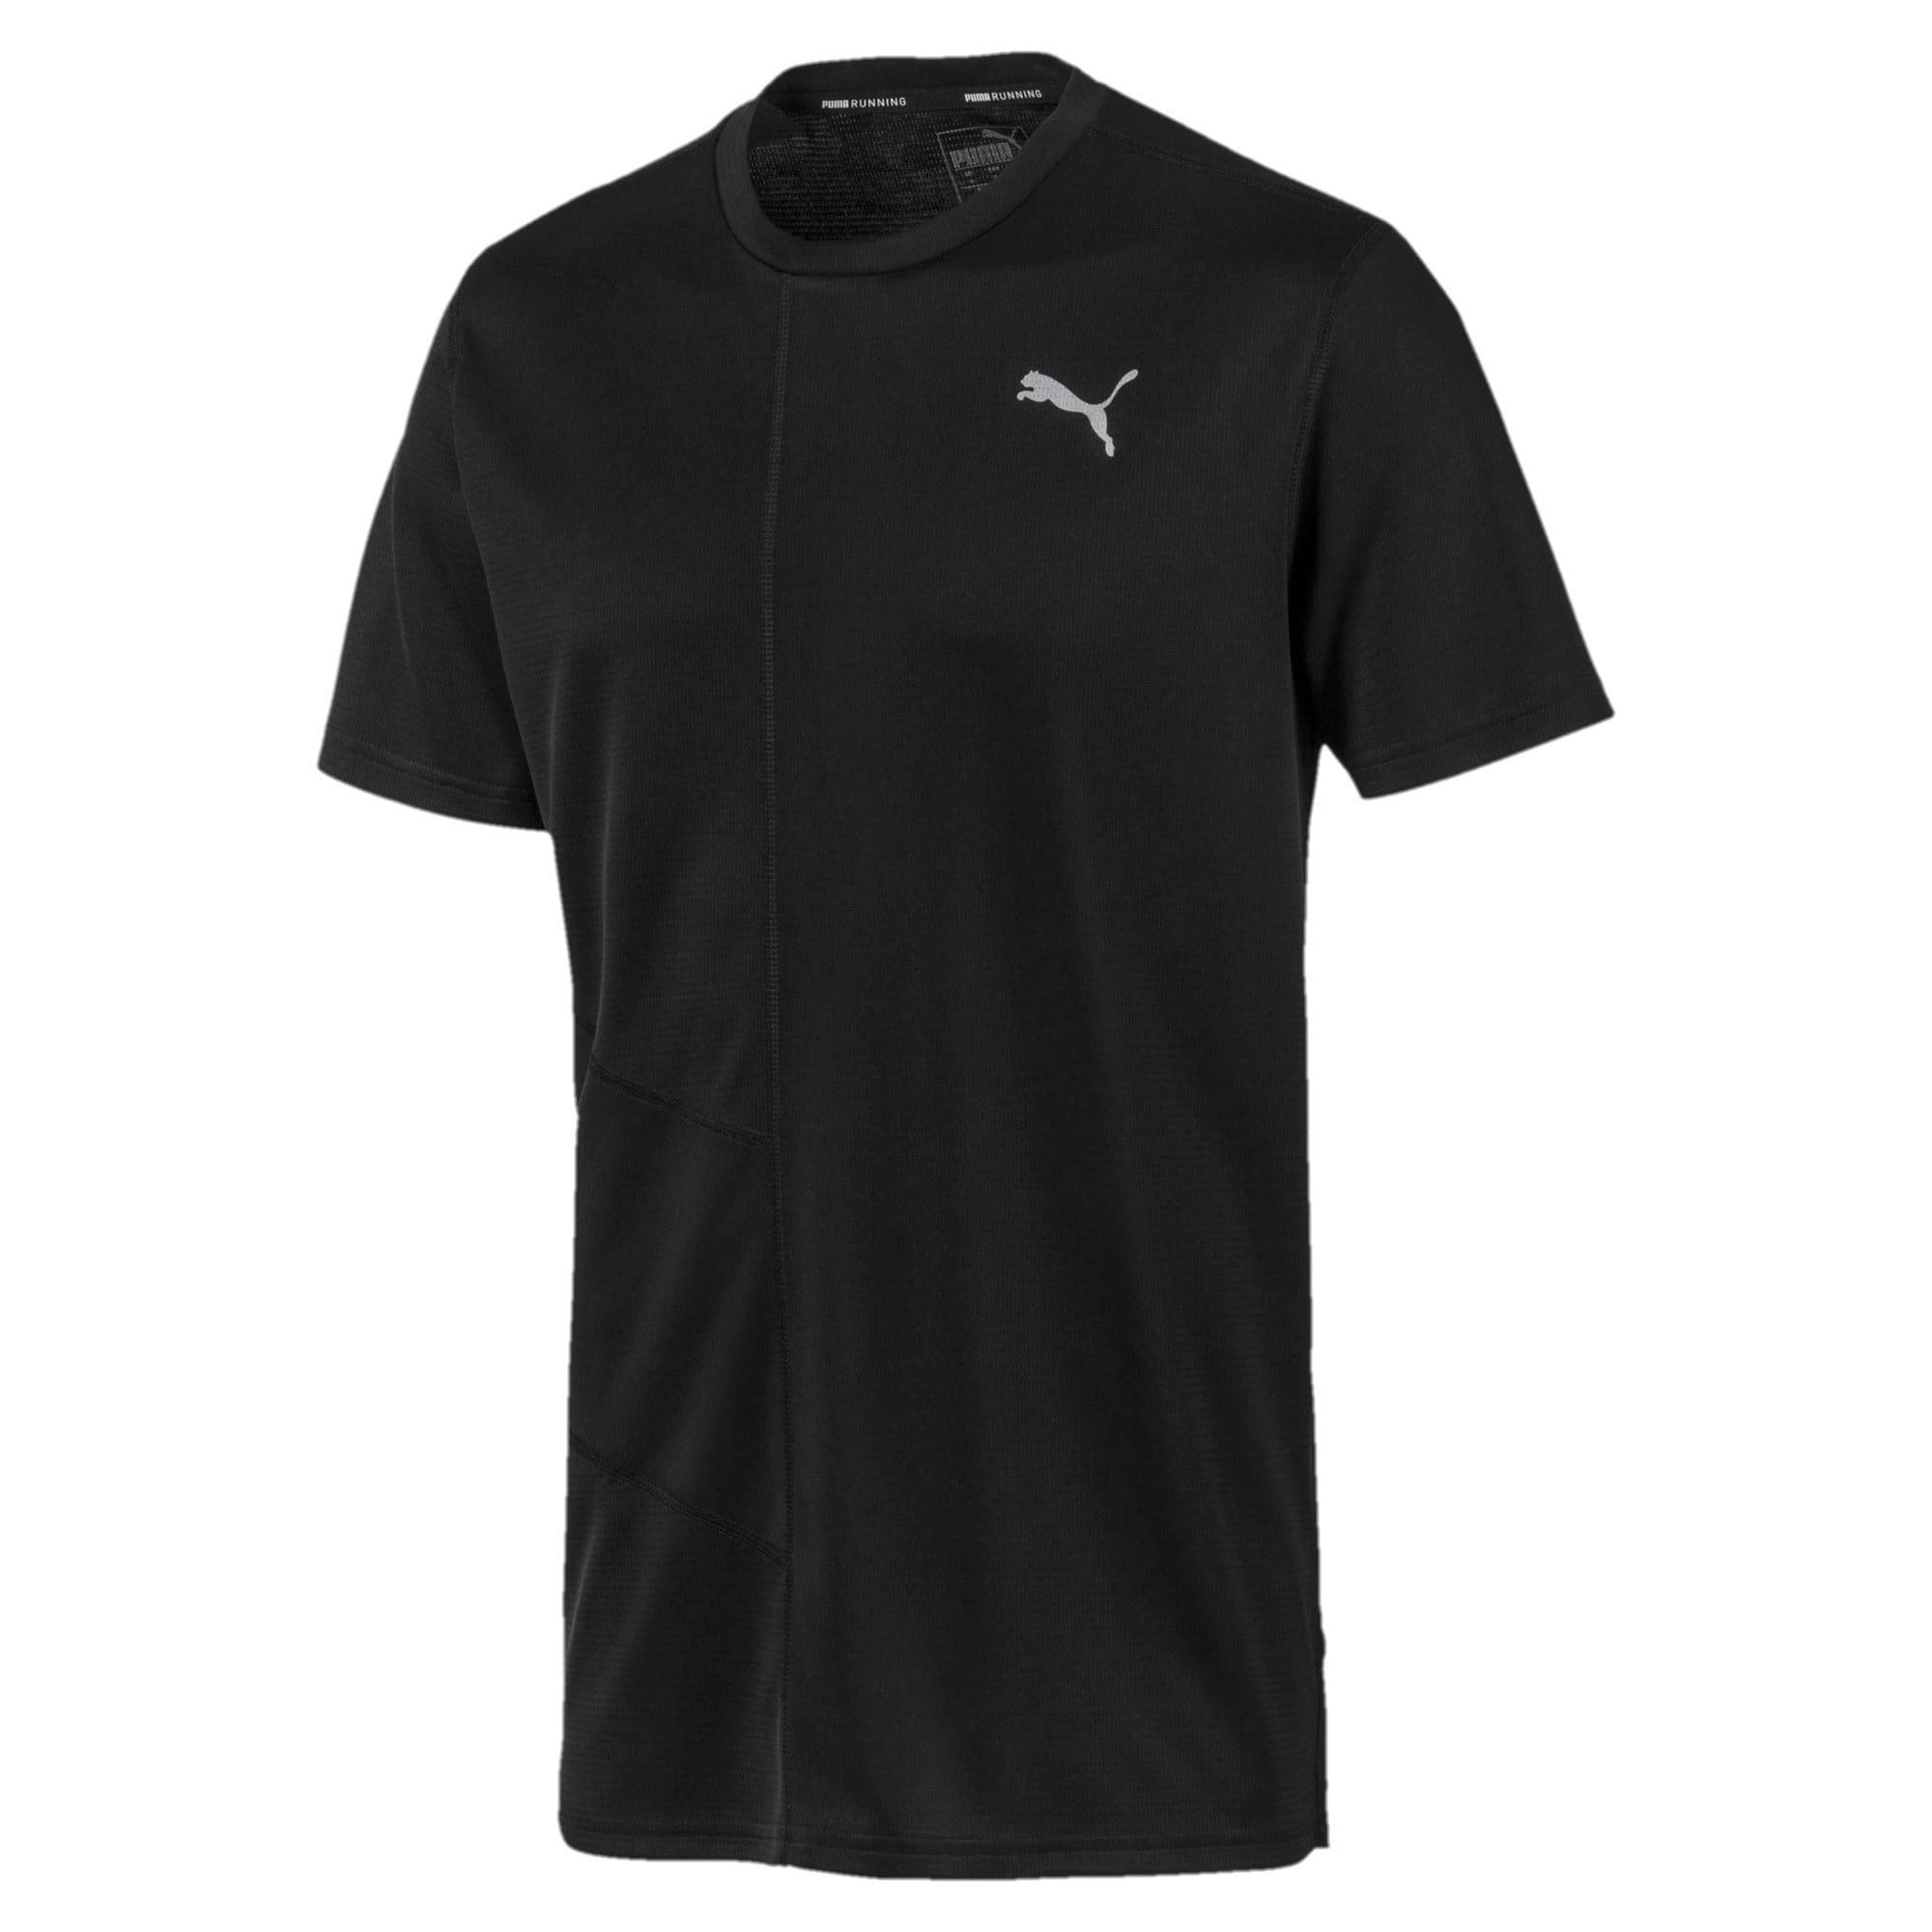 Thumbnail 4 of IGNITE Men's Running T-Shirt, Puma Black, medium